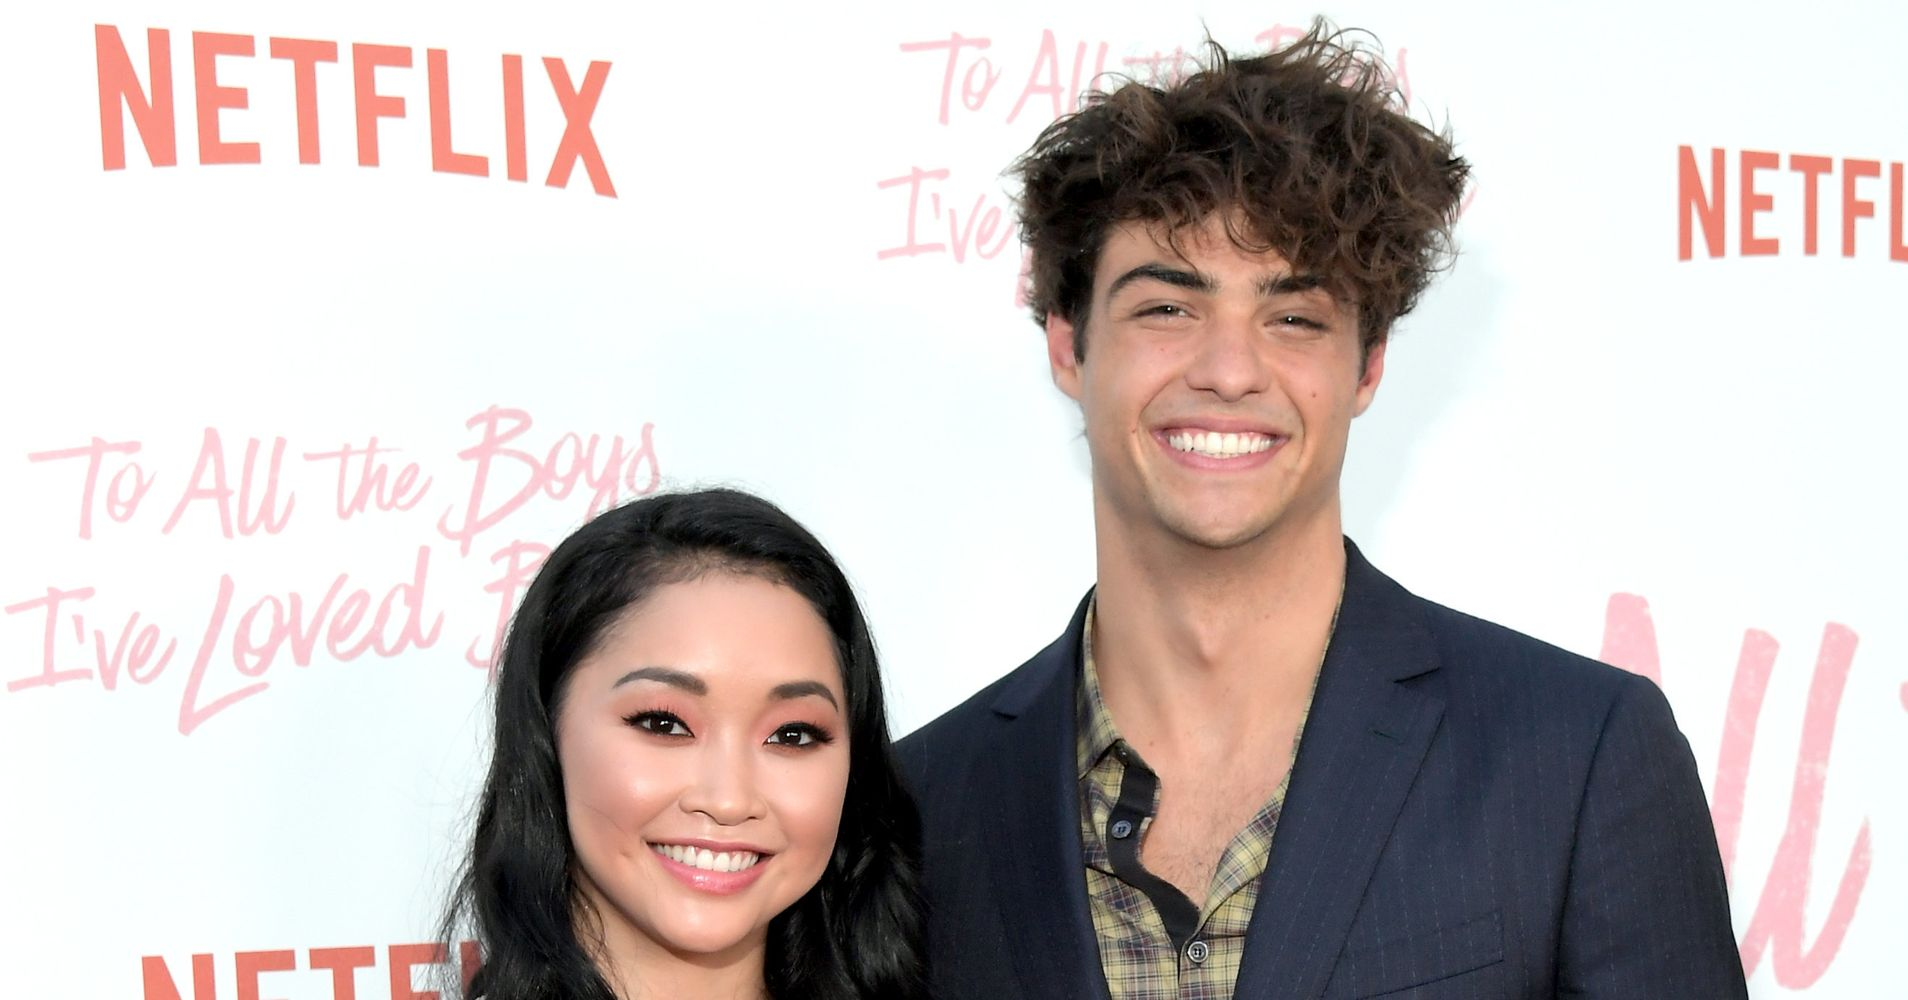 Netflix Says \'To All The Boys I\'ve Loved Before\' Is One Of Its Most ...